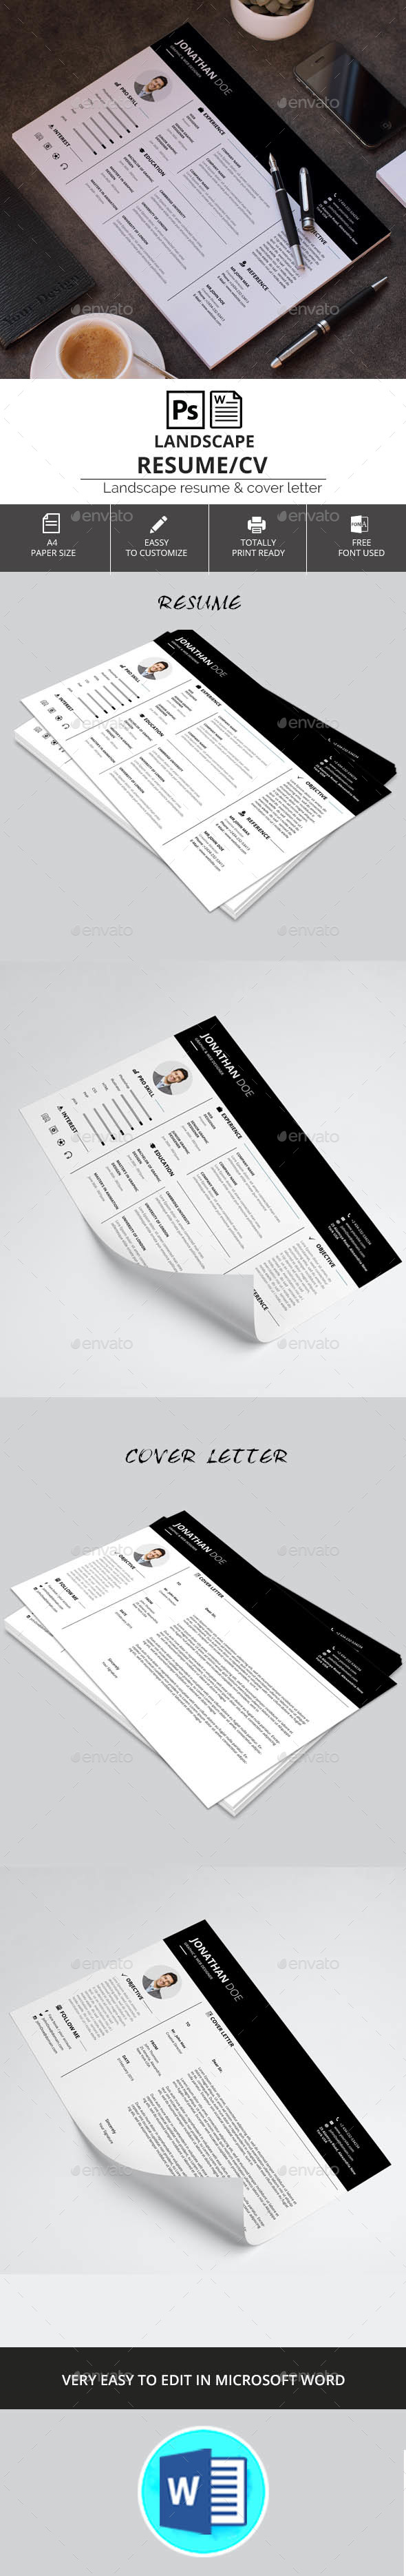 Landscape Resume/CV - Resumes Stationery